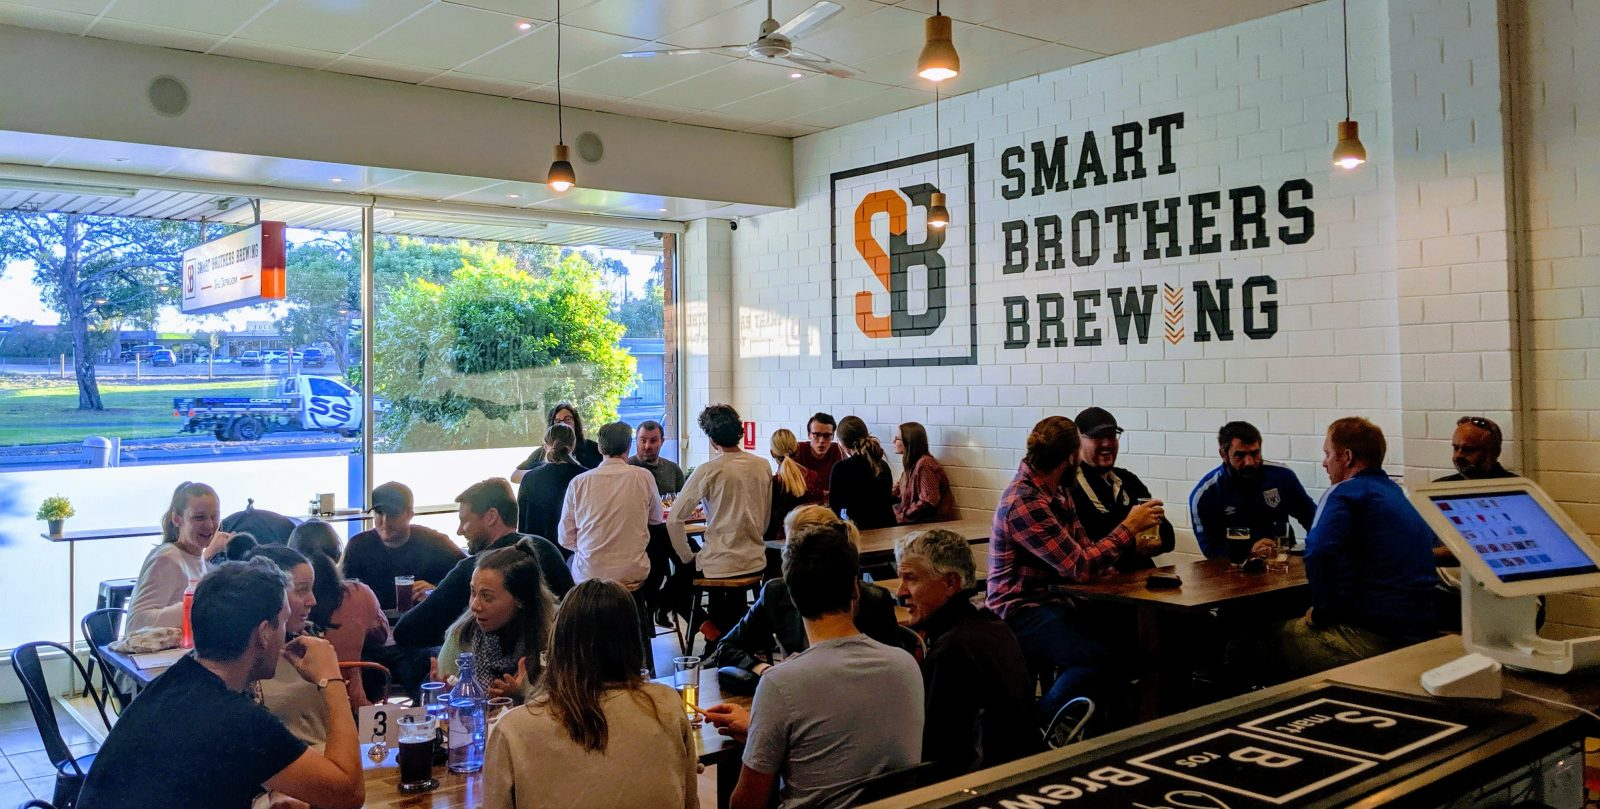 Smart Brothers Brewing - Taproom on a Sunday afternoon